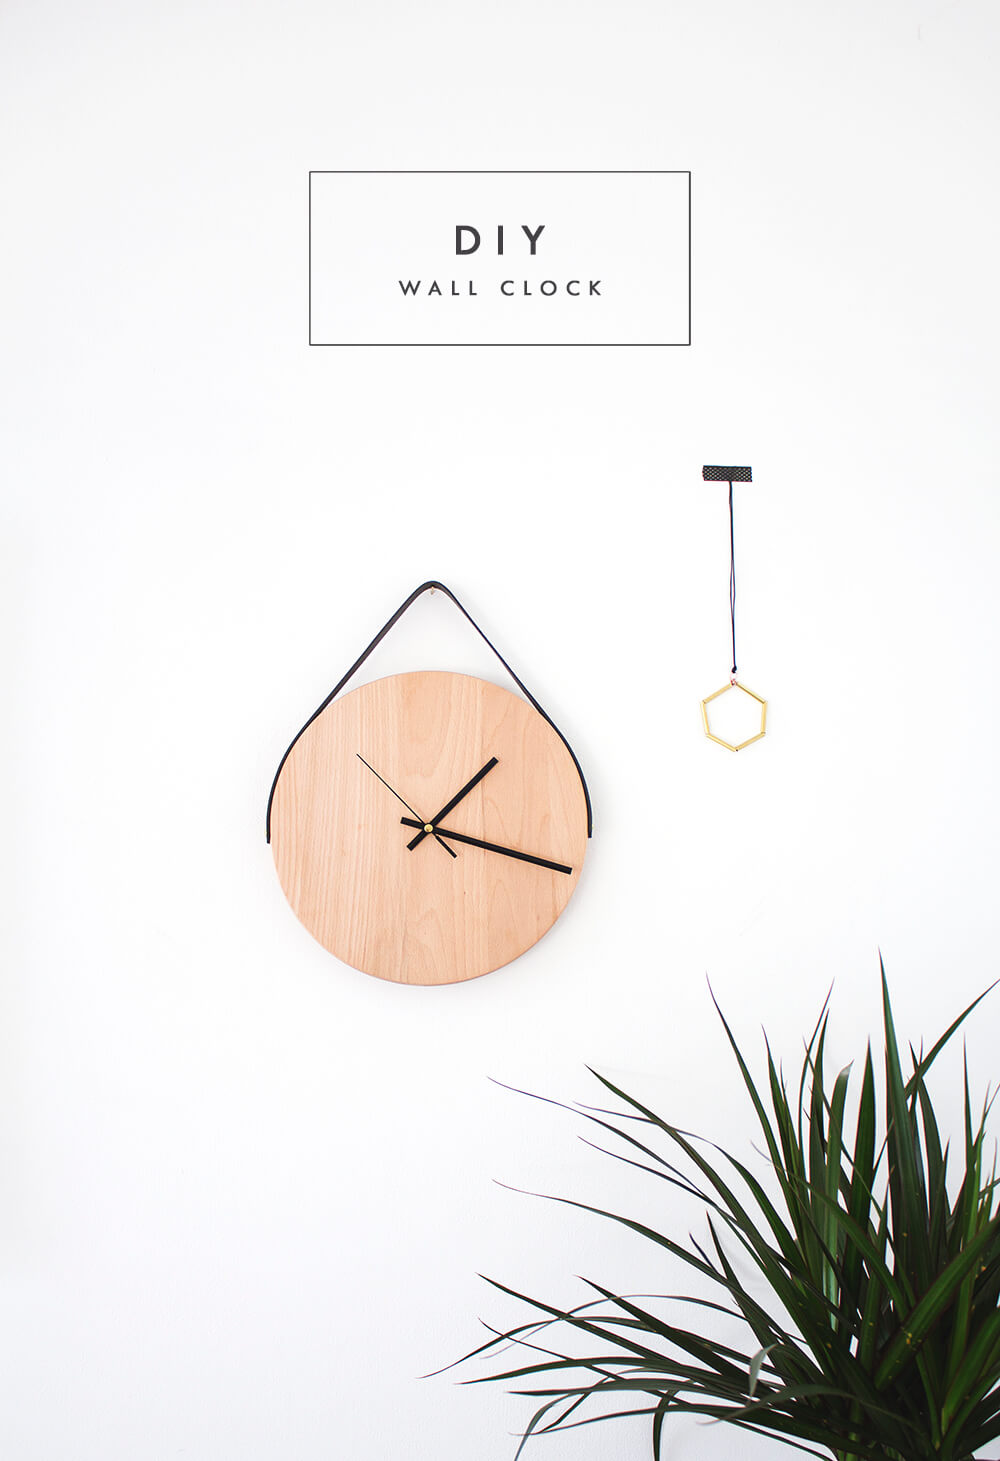 Wooden DIY Wall Clock Ideas